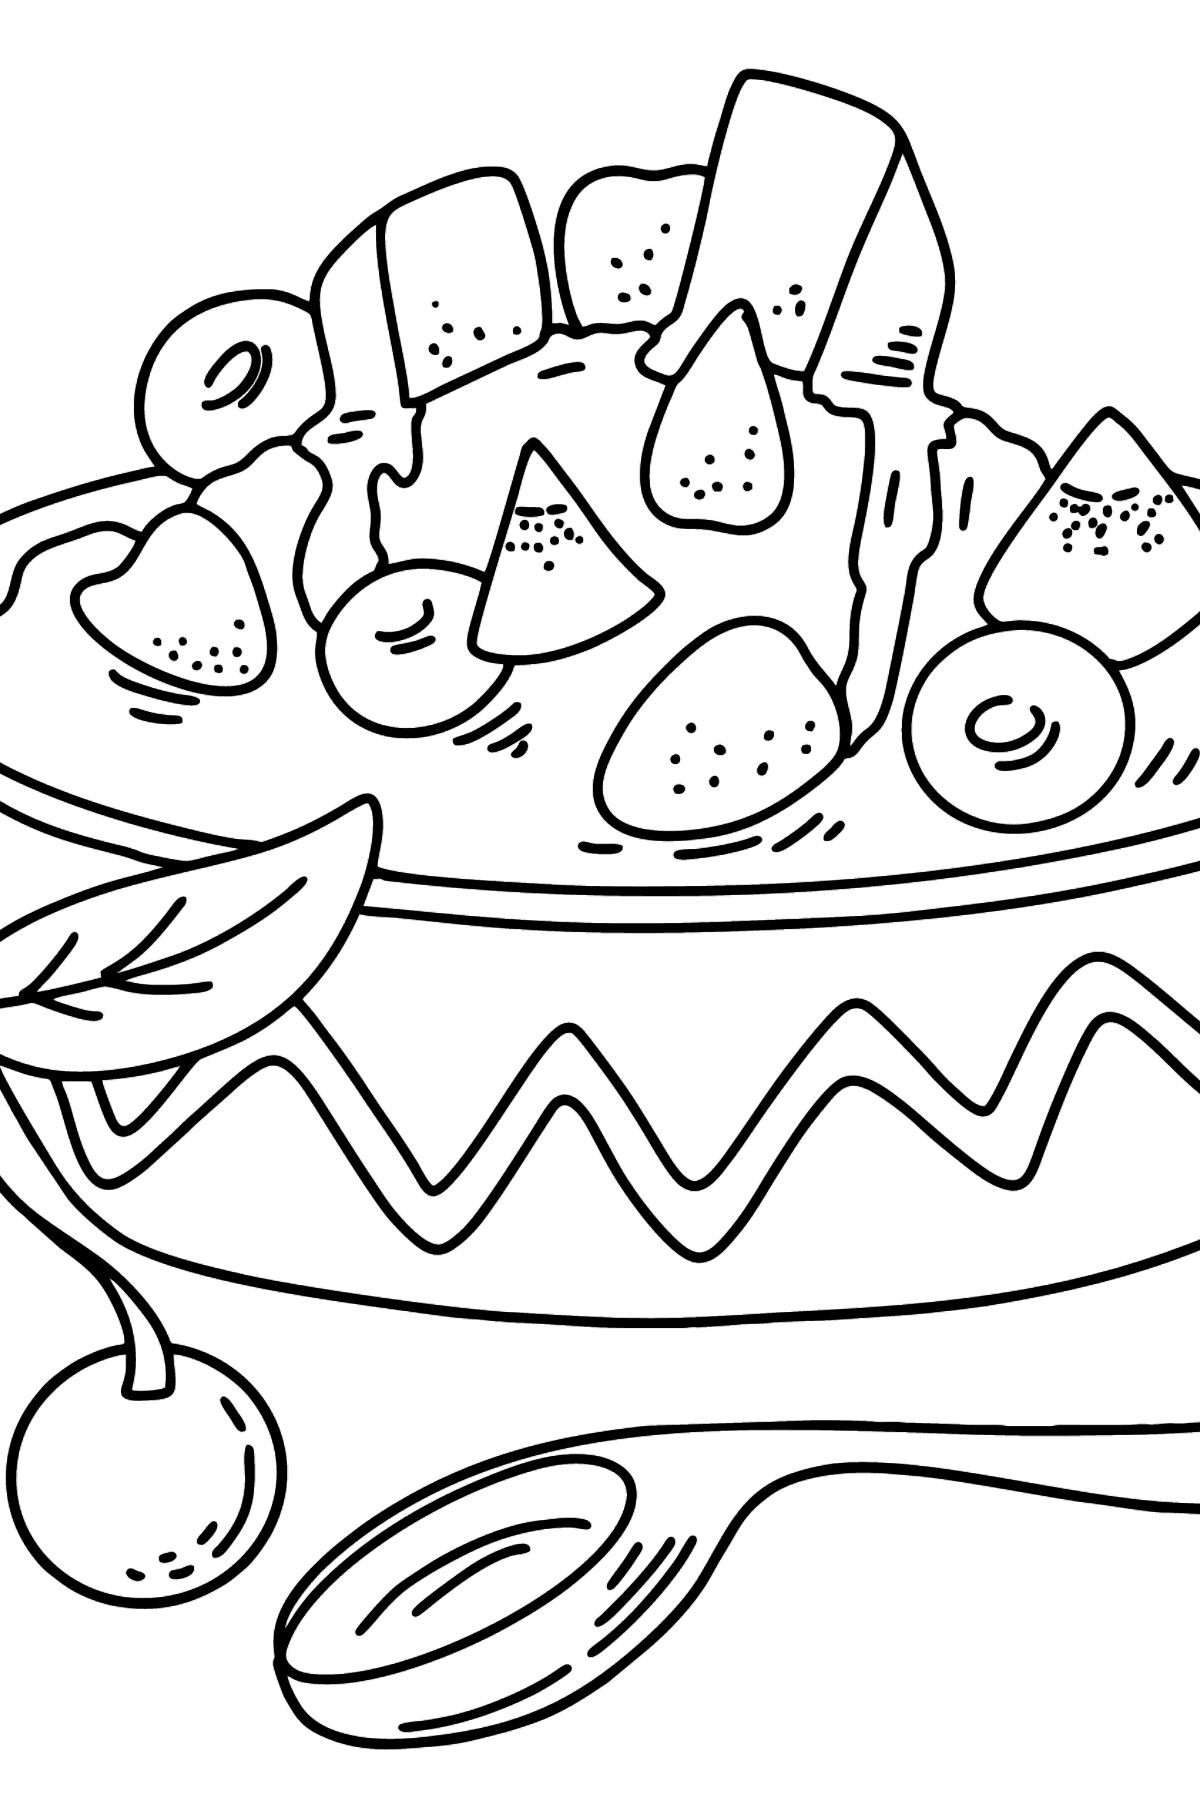 Porridge with Berries and Butter coloring page - Coloring Pages for Kids